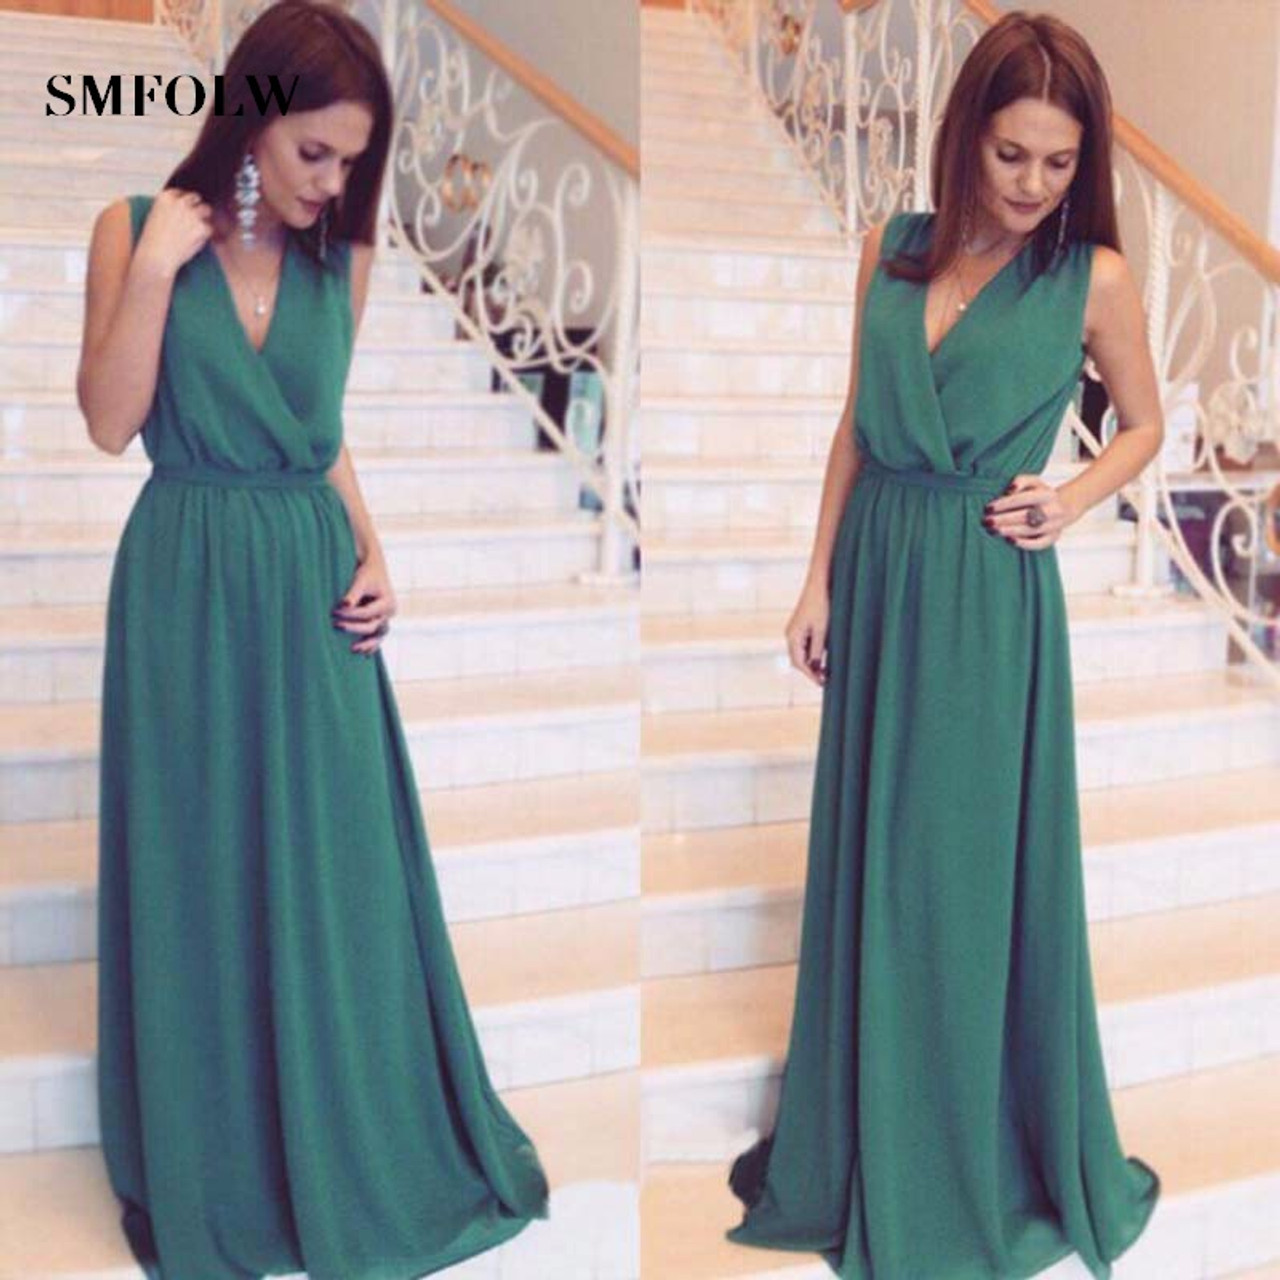 52b82e3676 ... SMFOLW Seven color chiffon Women Summer Beach party Dress fashion high  waist Long Maxi sundress sexy